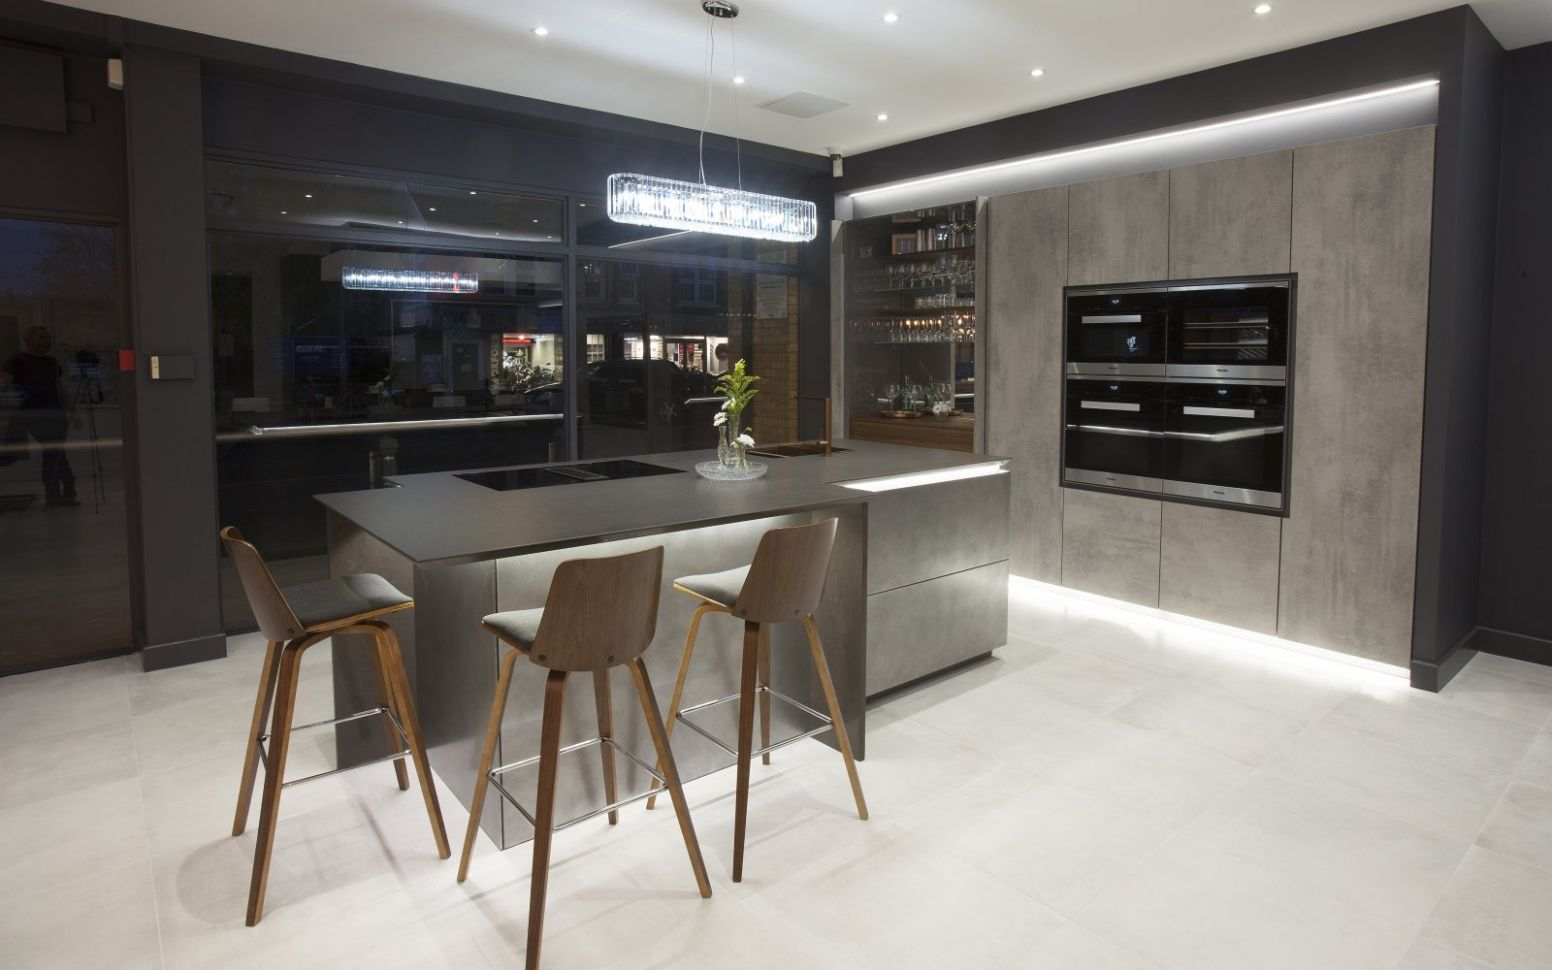 Woking kitchens - Woking fitted kitchens - in-toto kitchen showroom